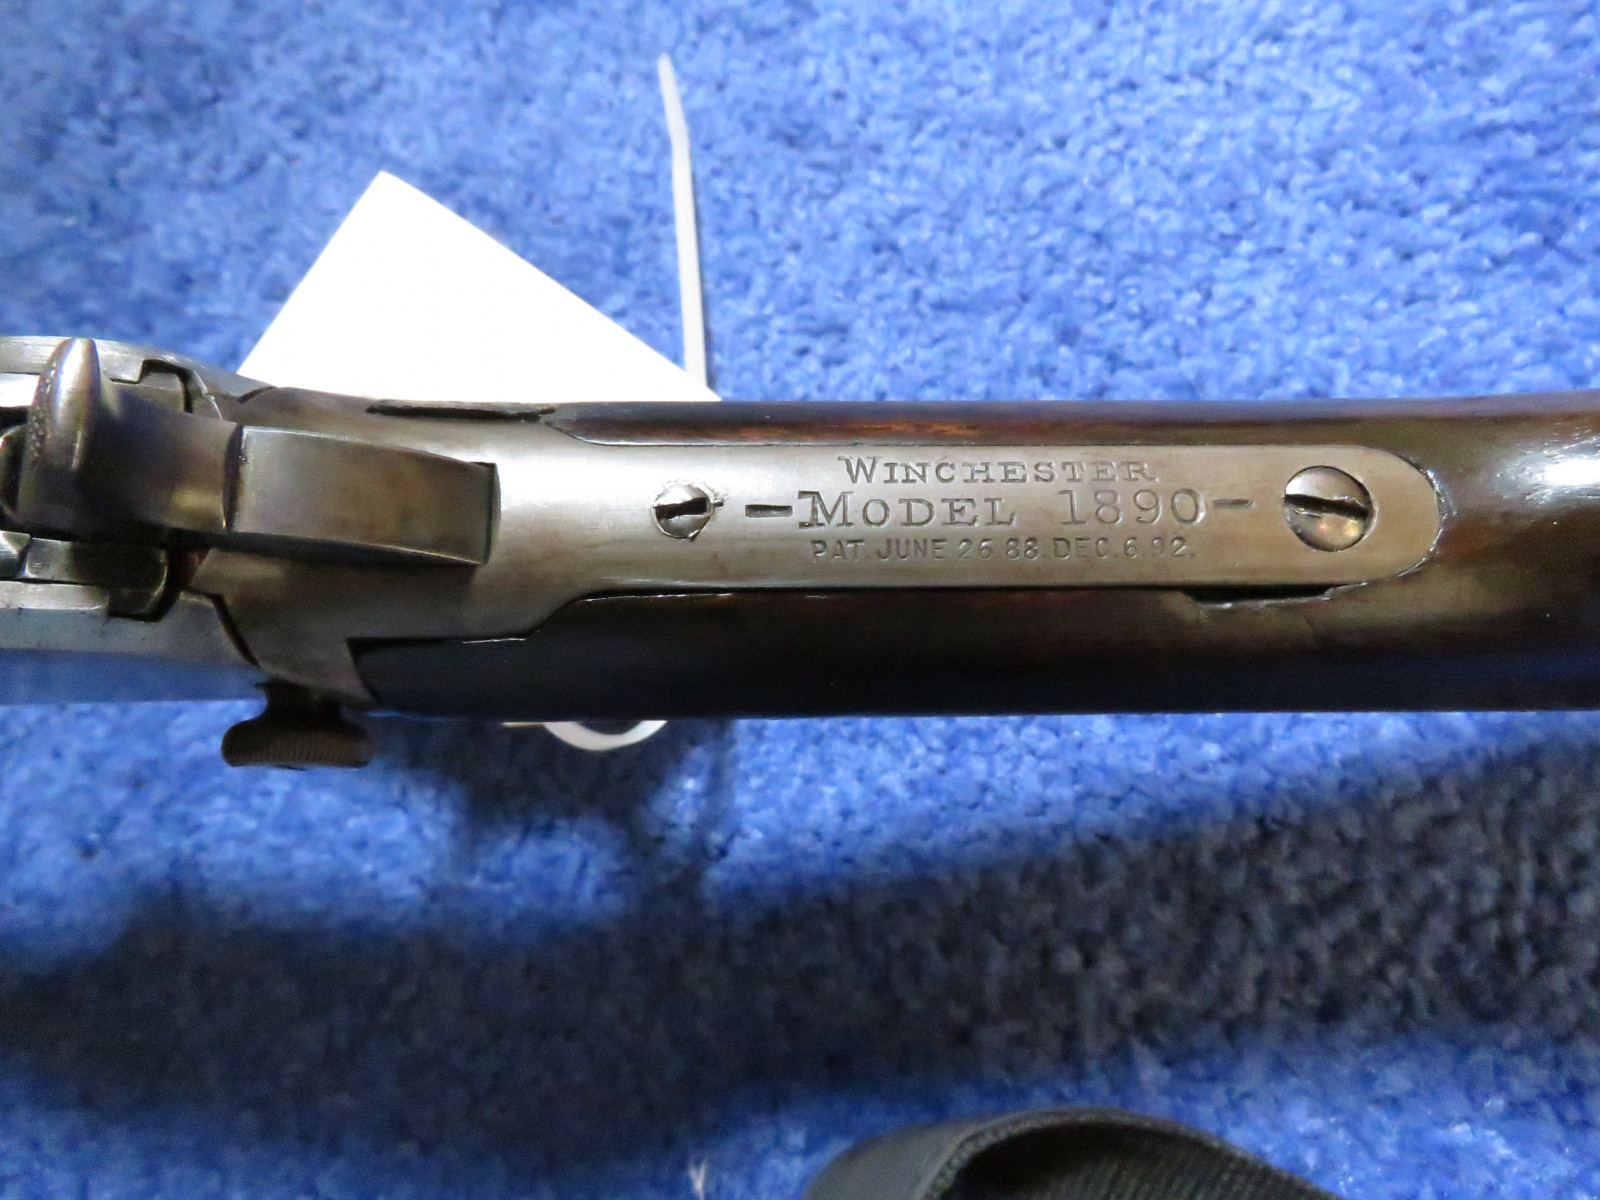 Winchester Model 1890 .22 Rifle - Image 4